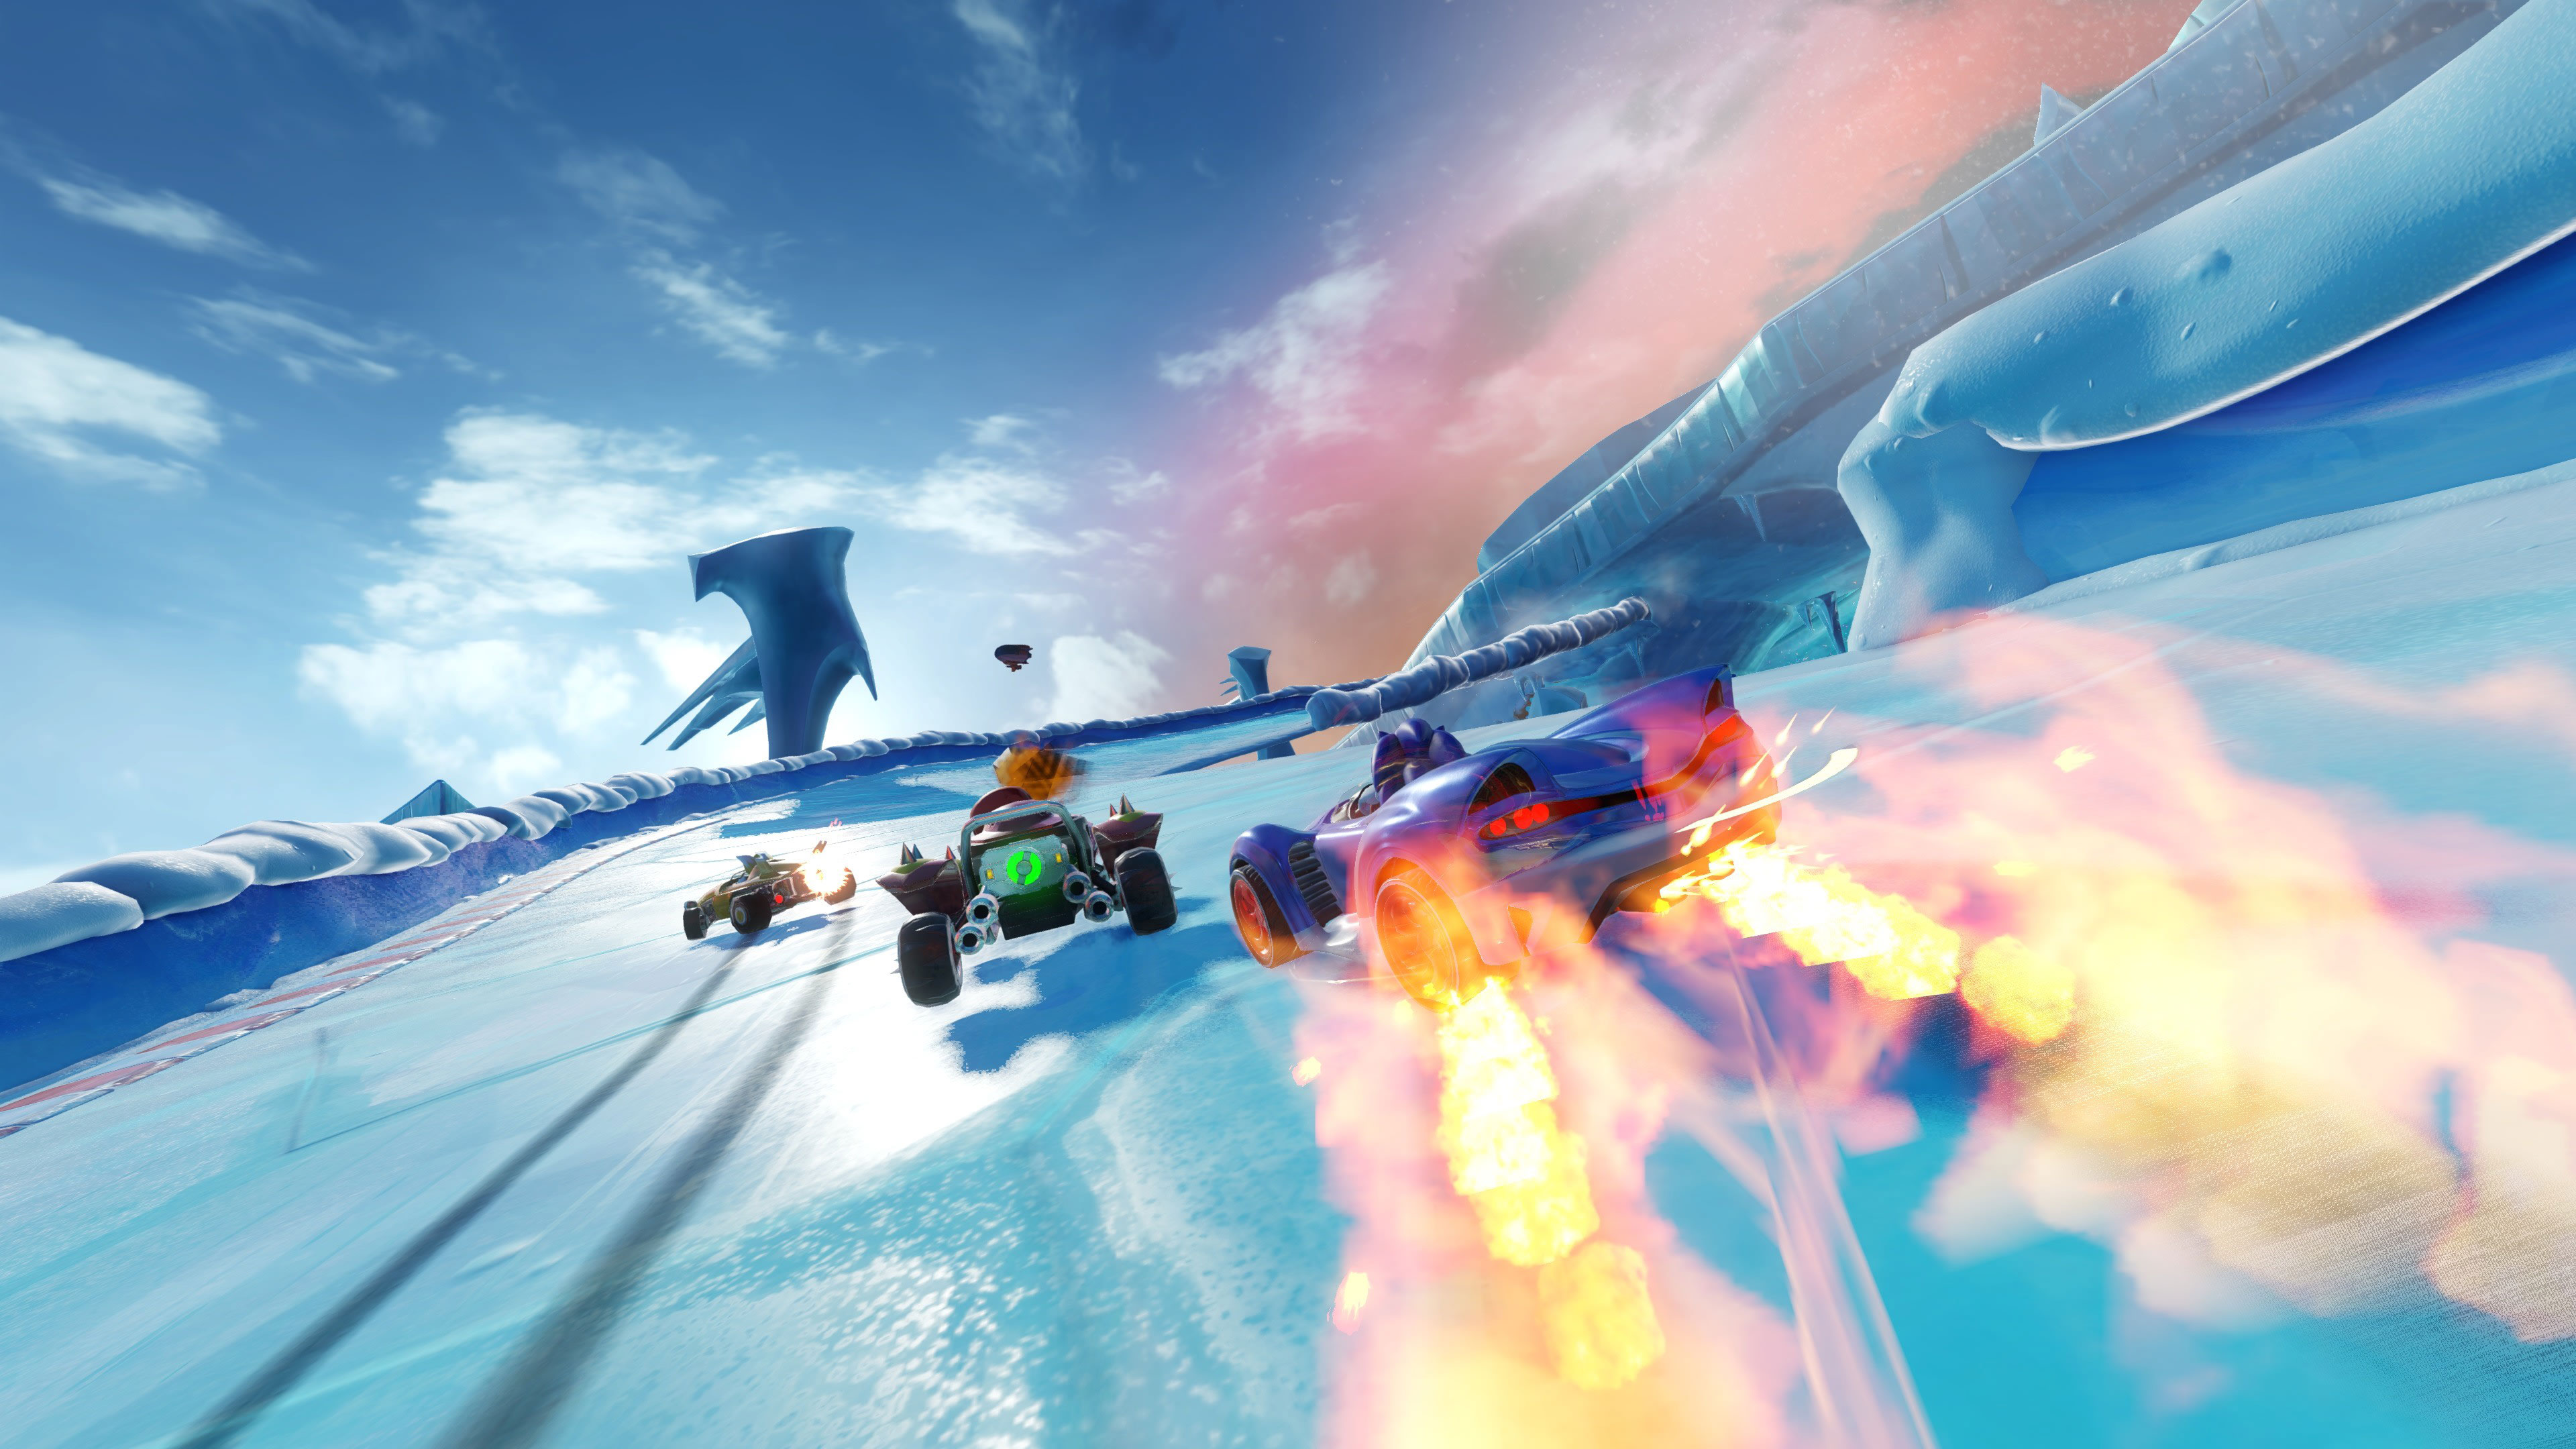 team sonic racing background wallpaper 67433